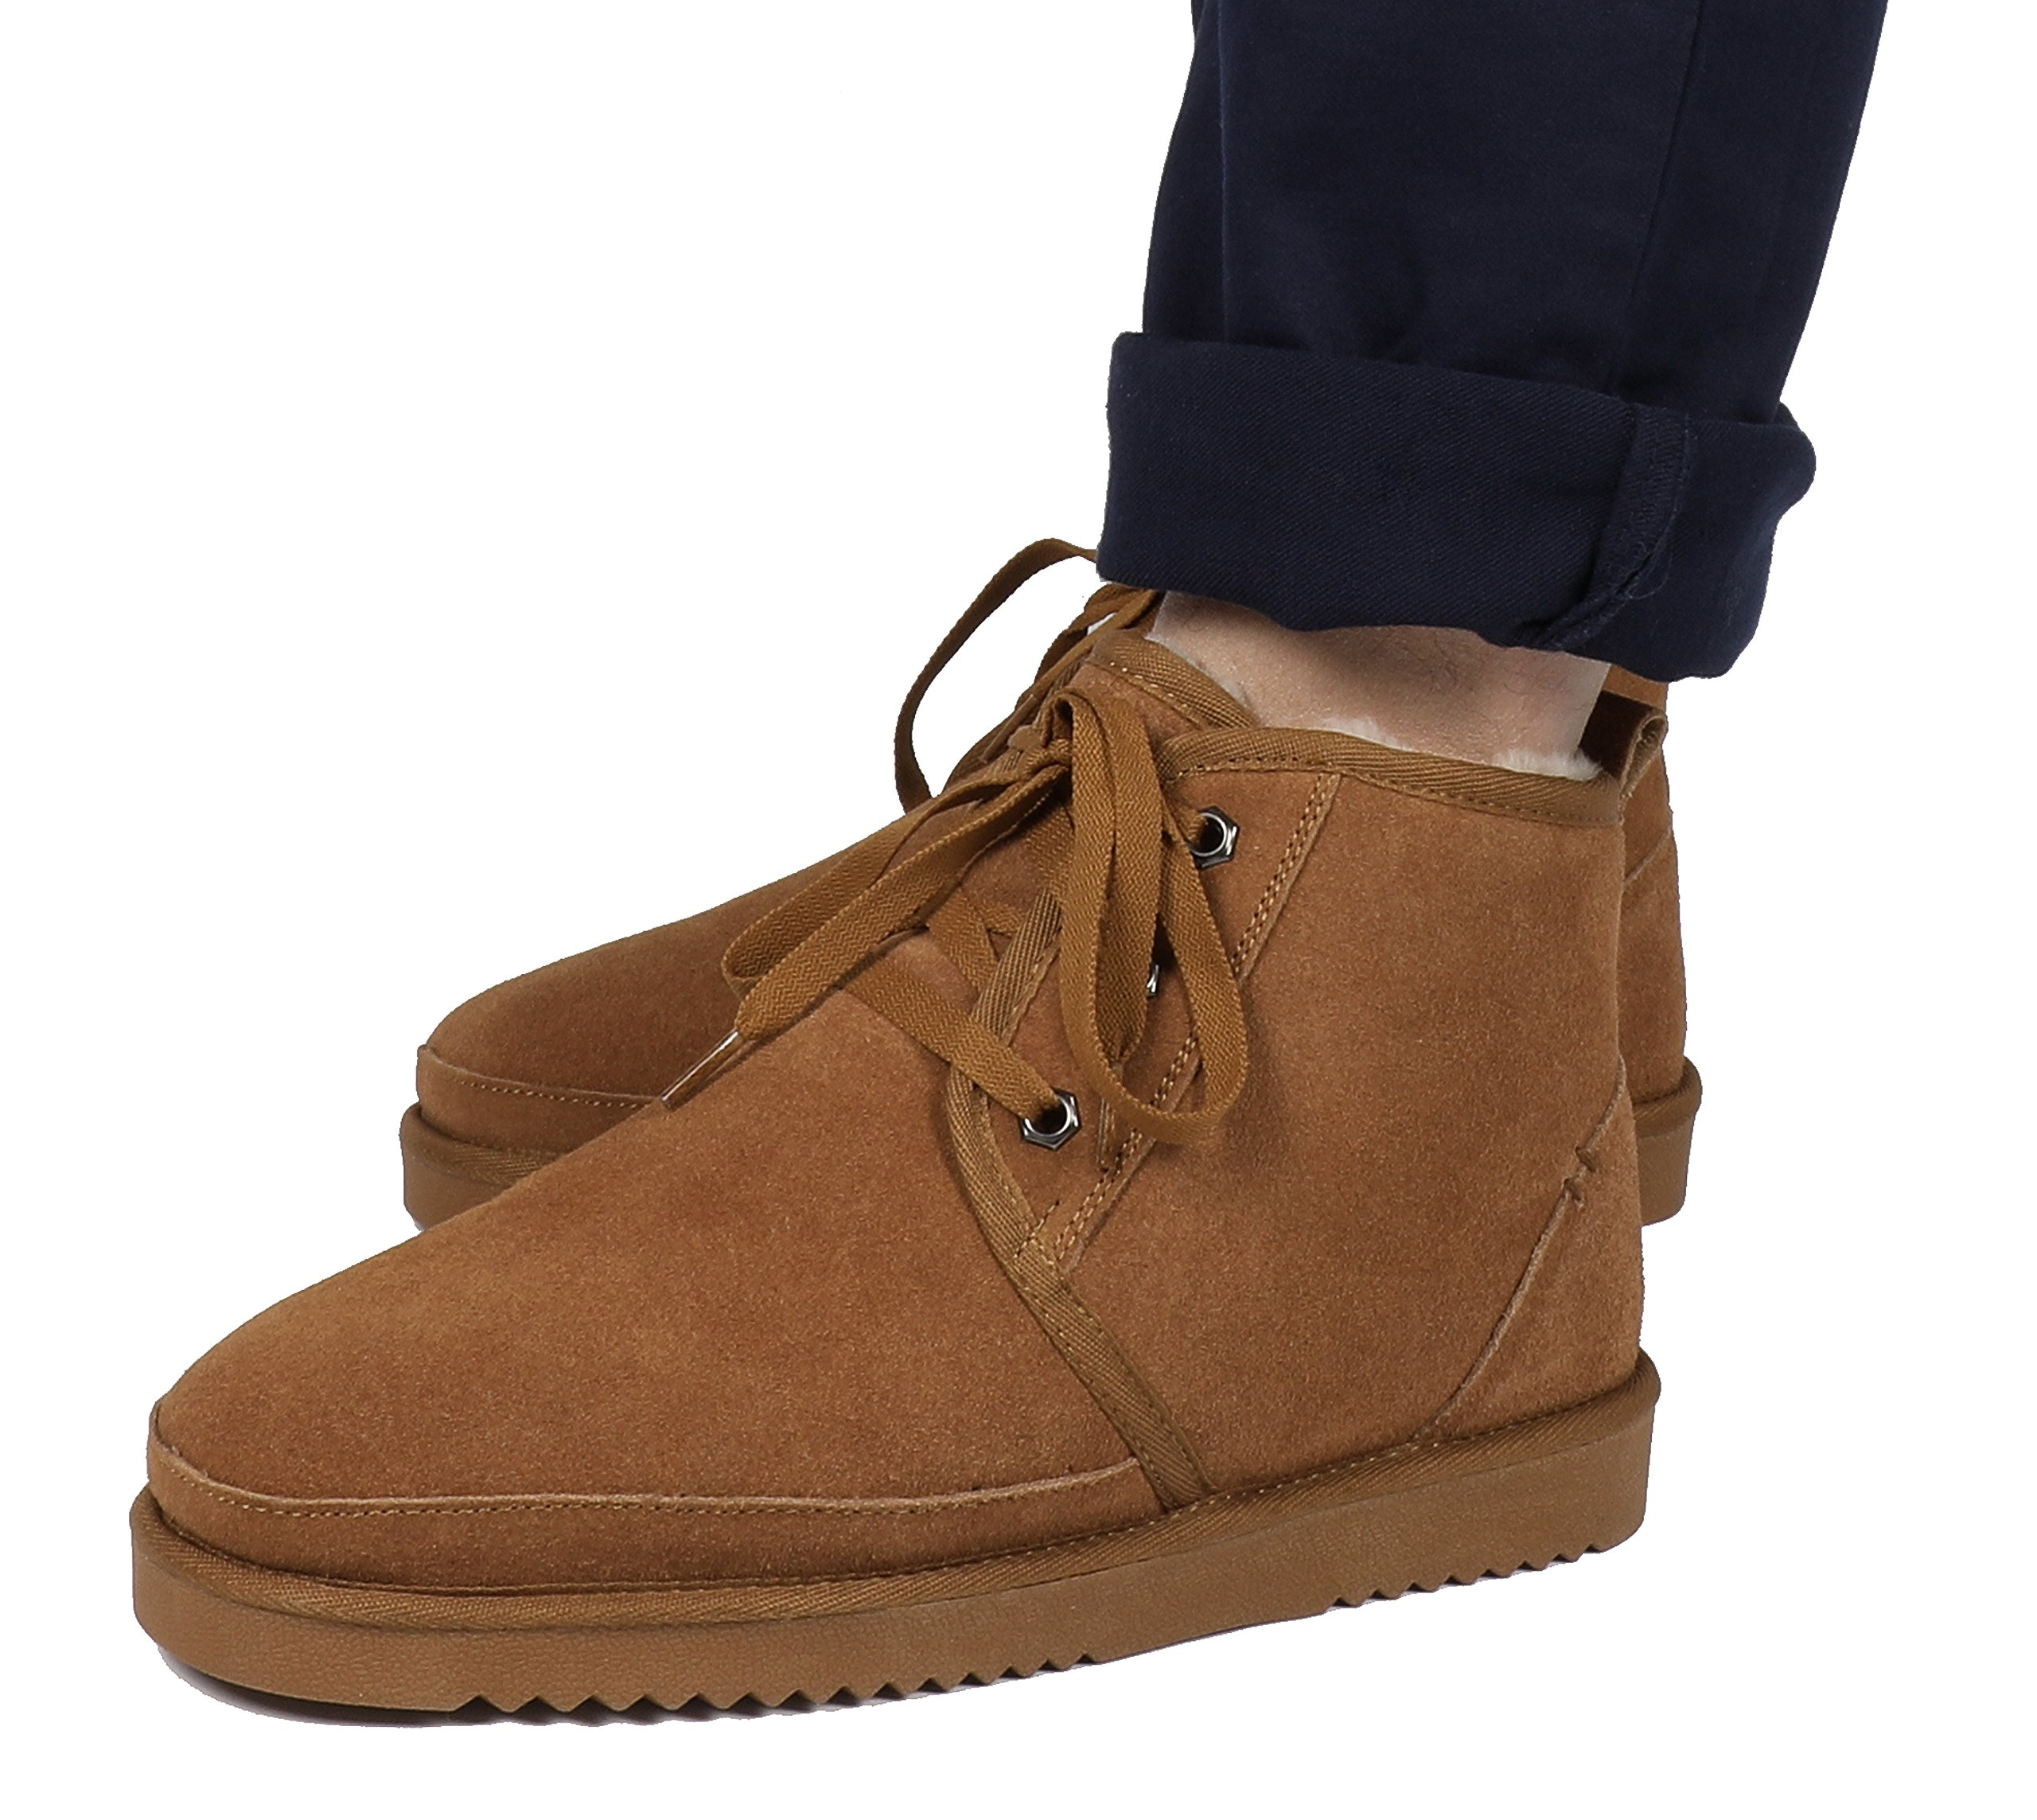 DREAM PAIRS Men's Wolly-01 Chesnut Suede Sheepskin Fur Winter Boots Size 9.5 M US